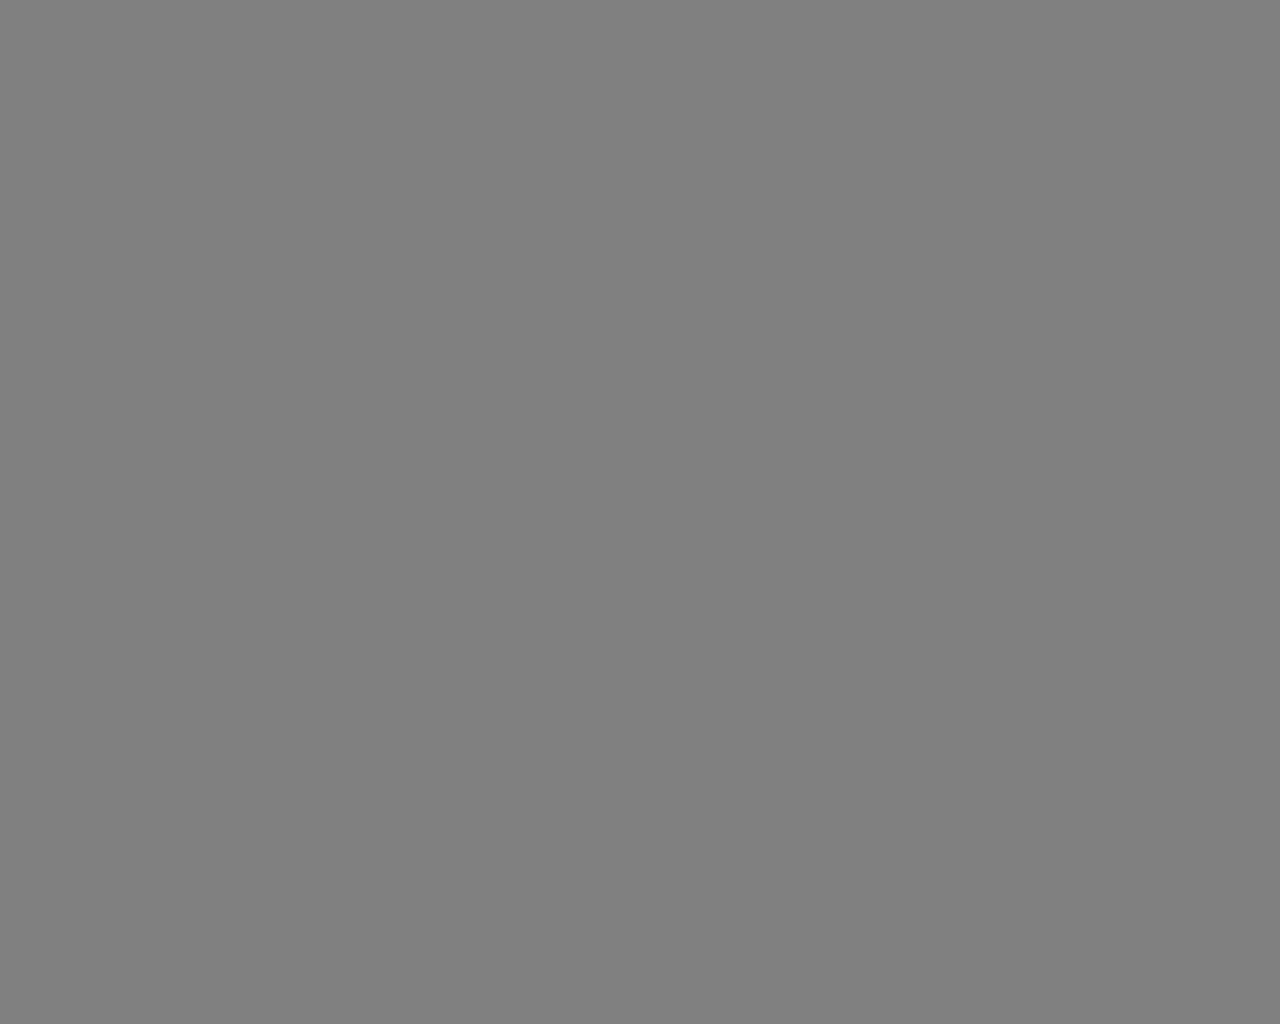 1280x1024 Trolley Grey Solid Color Background